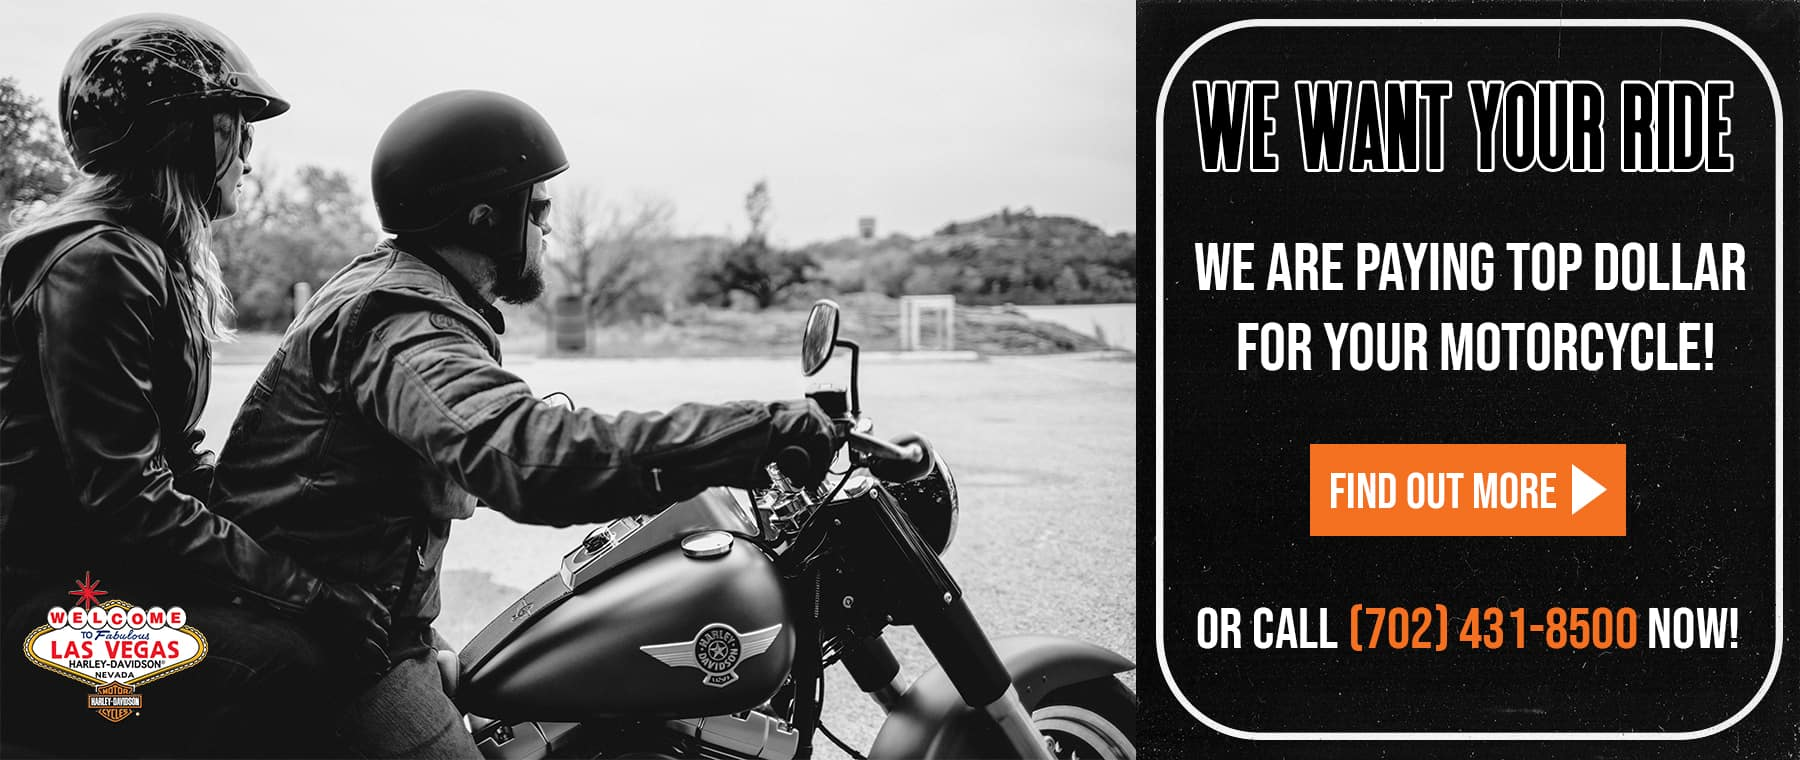 Website Banner – We Want Your Ride